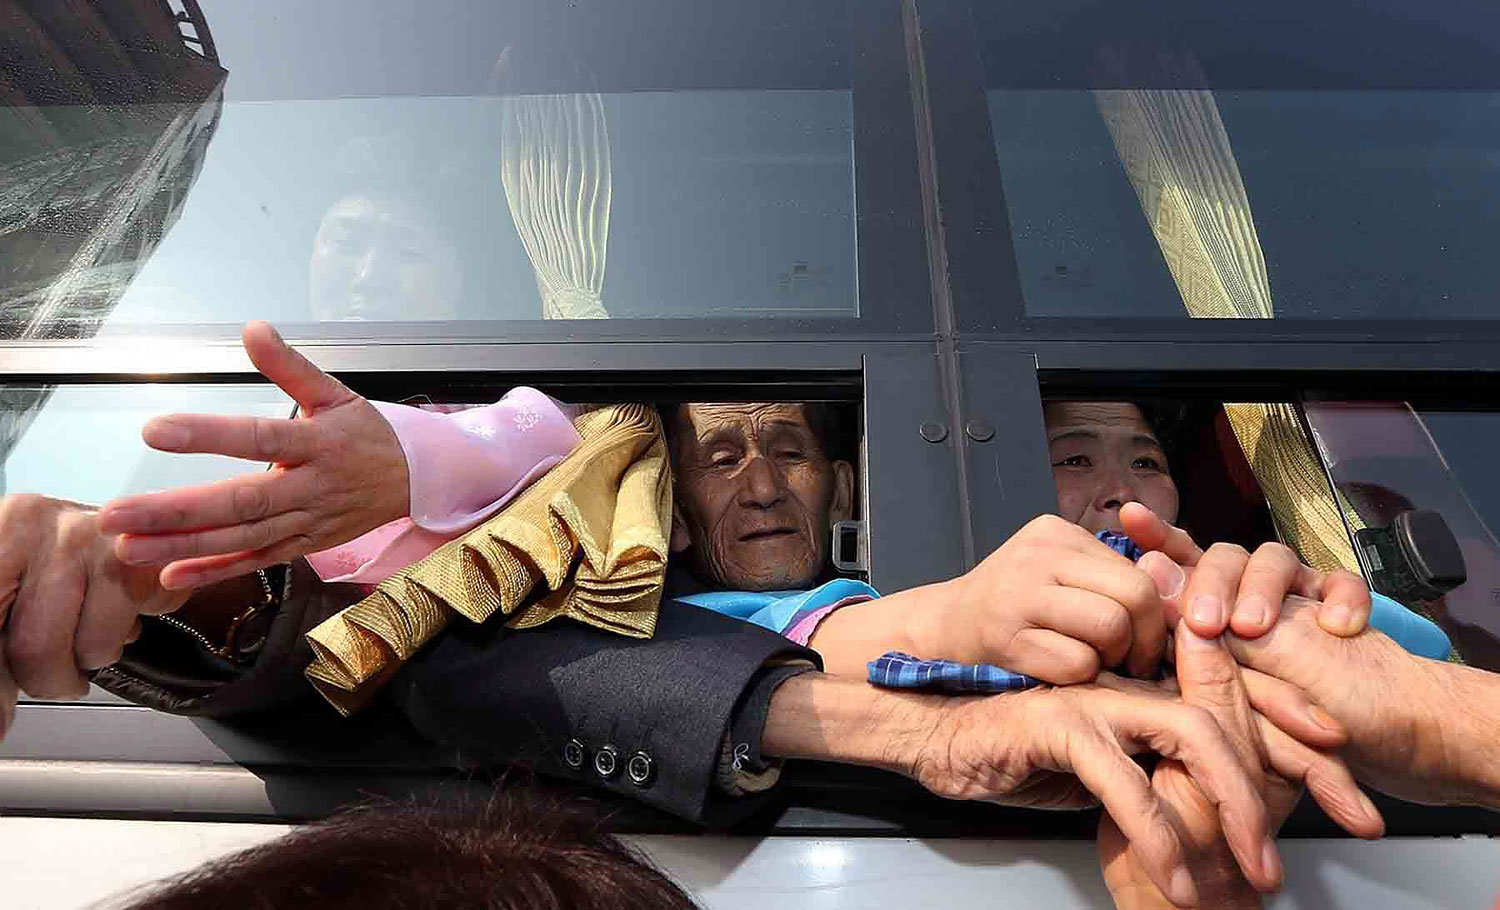 North and South Korean family hold hands at a bus as they leave after the inter-Korean family reunion meeting at Mount Kumgang resort, North Korea, Feb. 25, 2014.